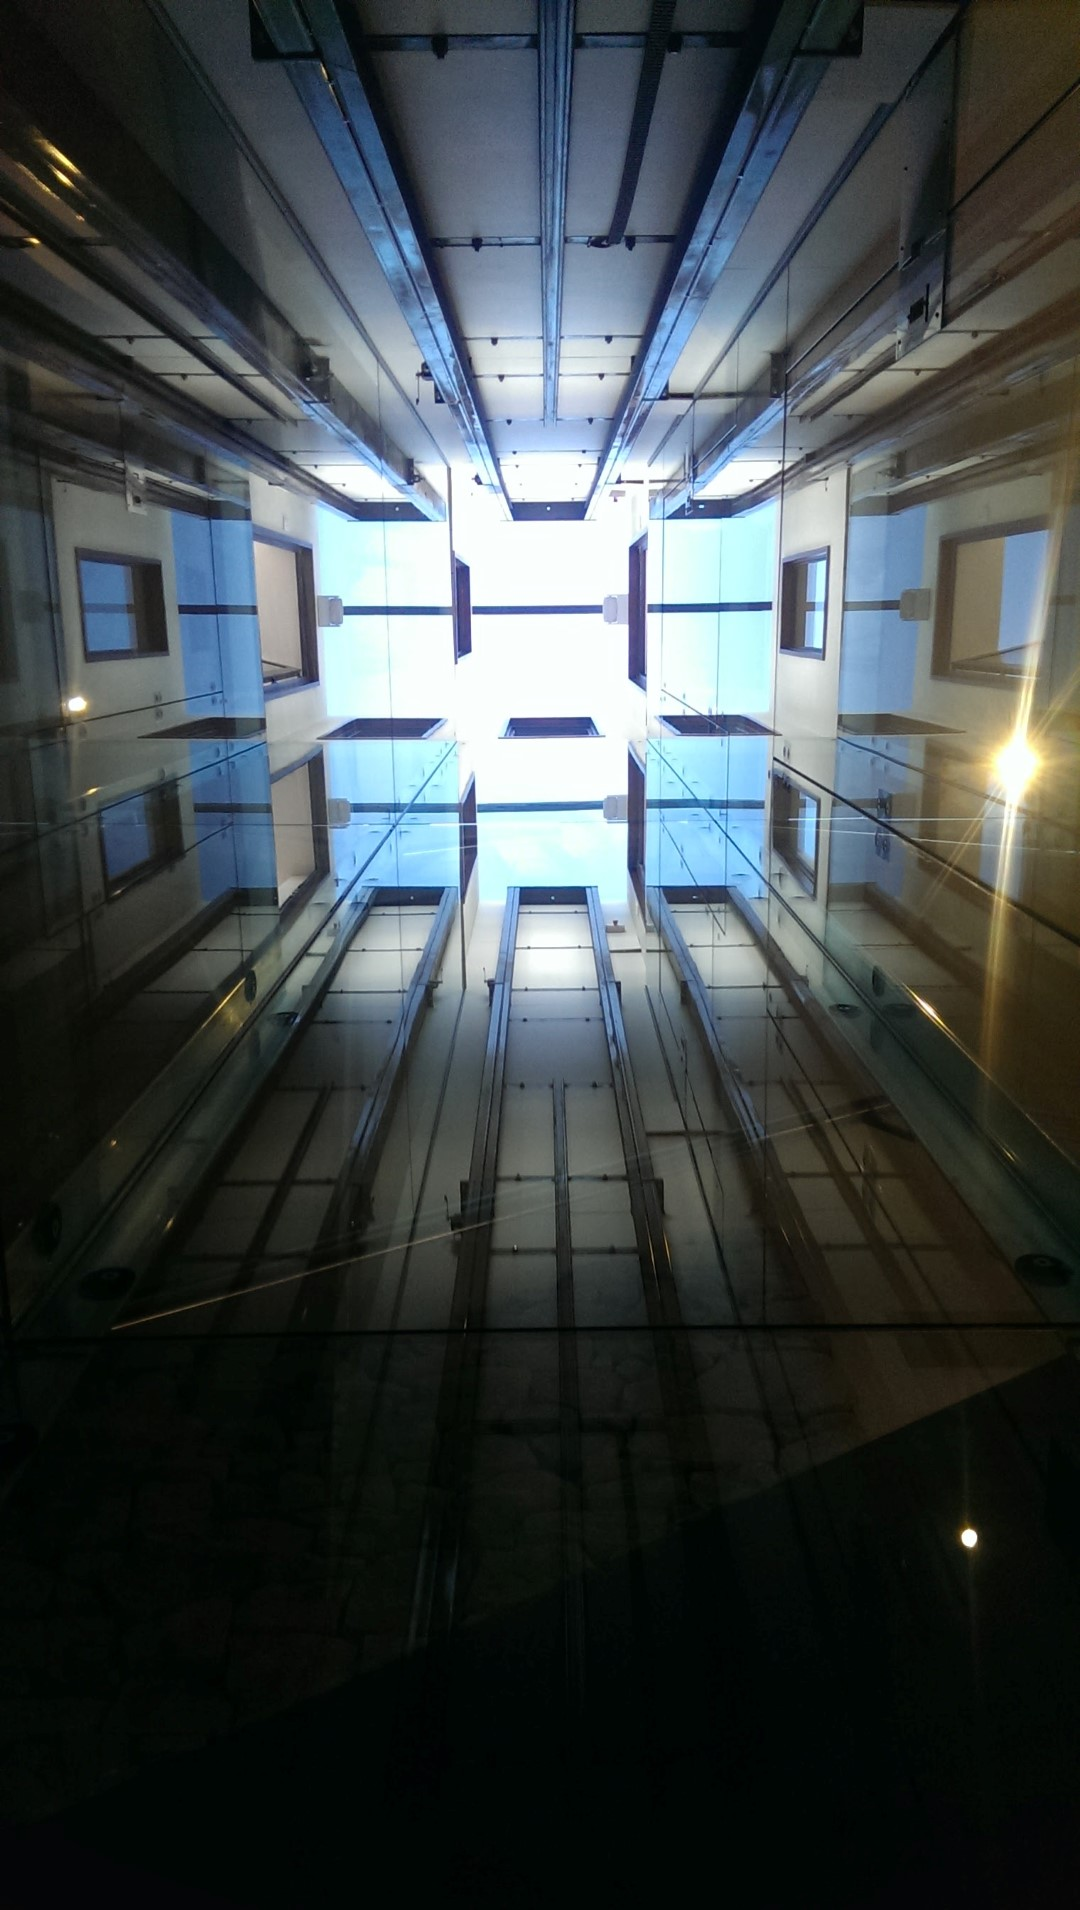 Nz Made Elevators Bespoke Designs Or Affordable Ready To Install Packages Tauranga New Zealand Backlit Glass Etched Poem Showcased In Lift Powerglide Elevators